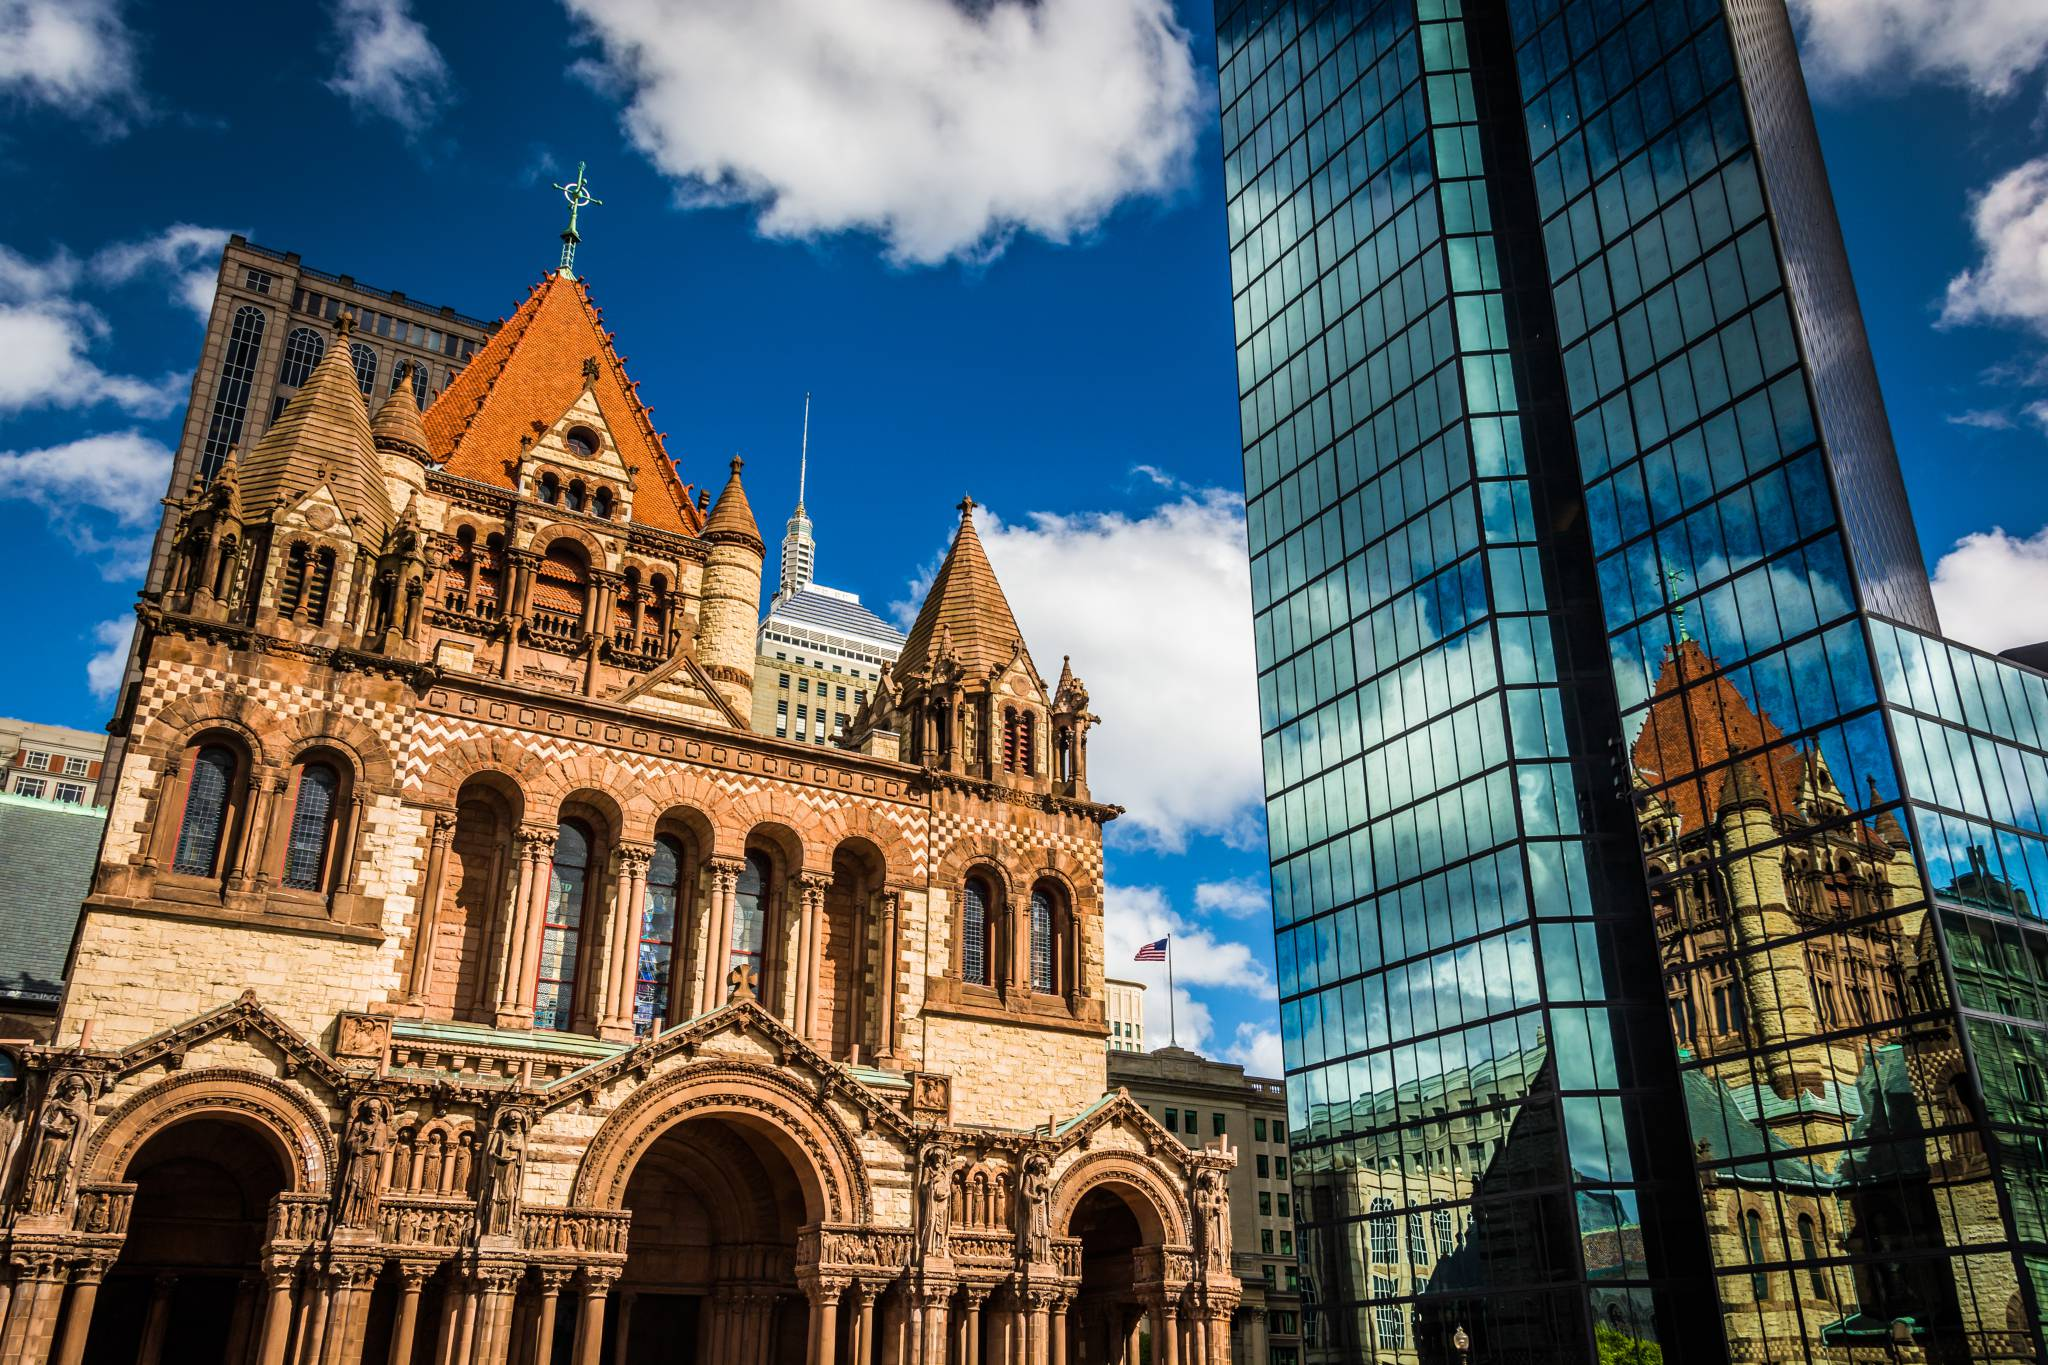 Boston's Trinity Church. A city of Contrasts